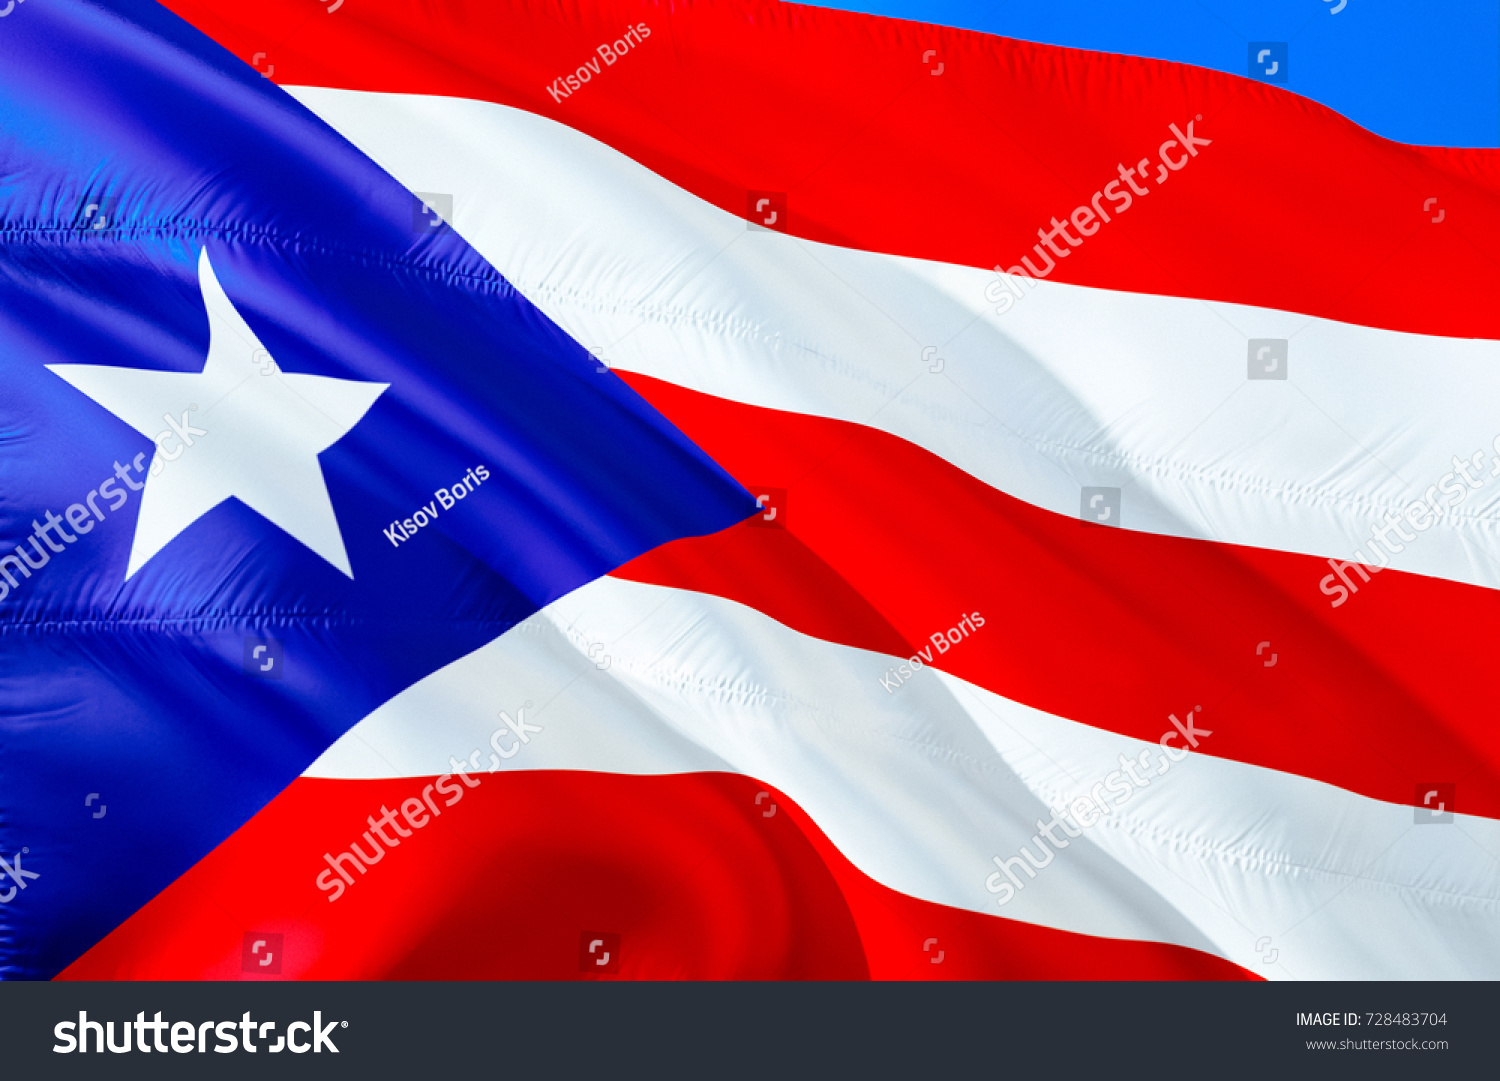 Puerto rico flag colors flag puerto stock illustration 728483704 puerto rico flag colors flag of puerto rico 3d waving flag design red biocorpaavc Choice Image